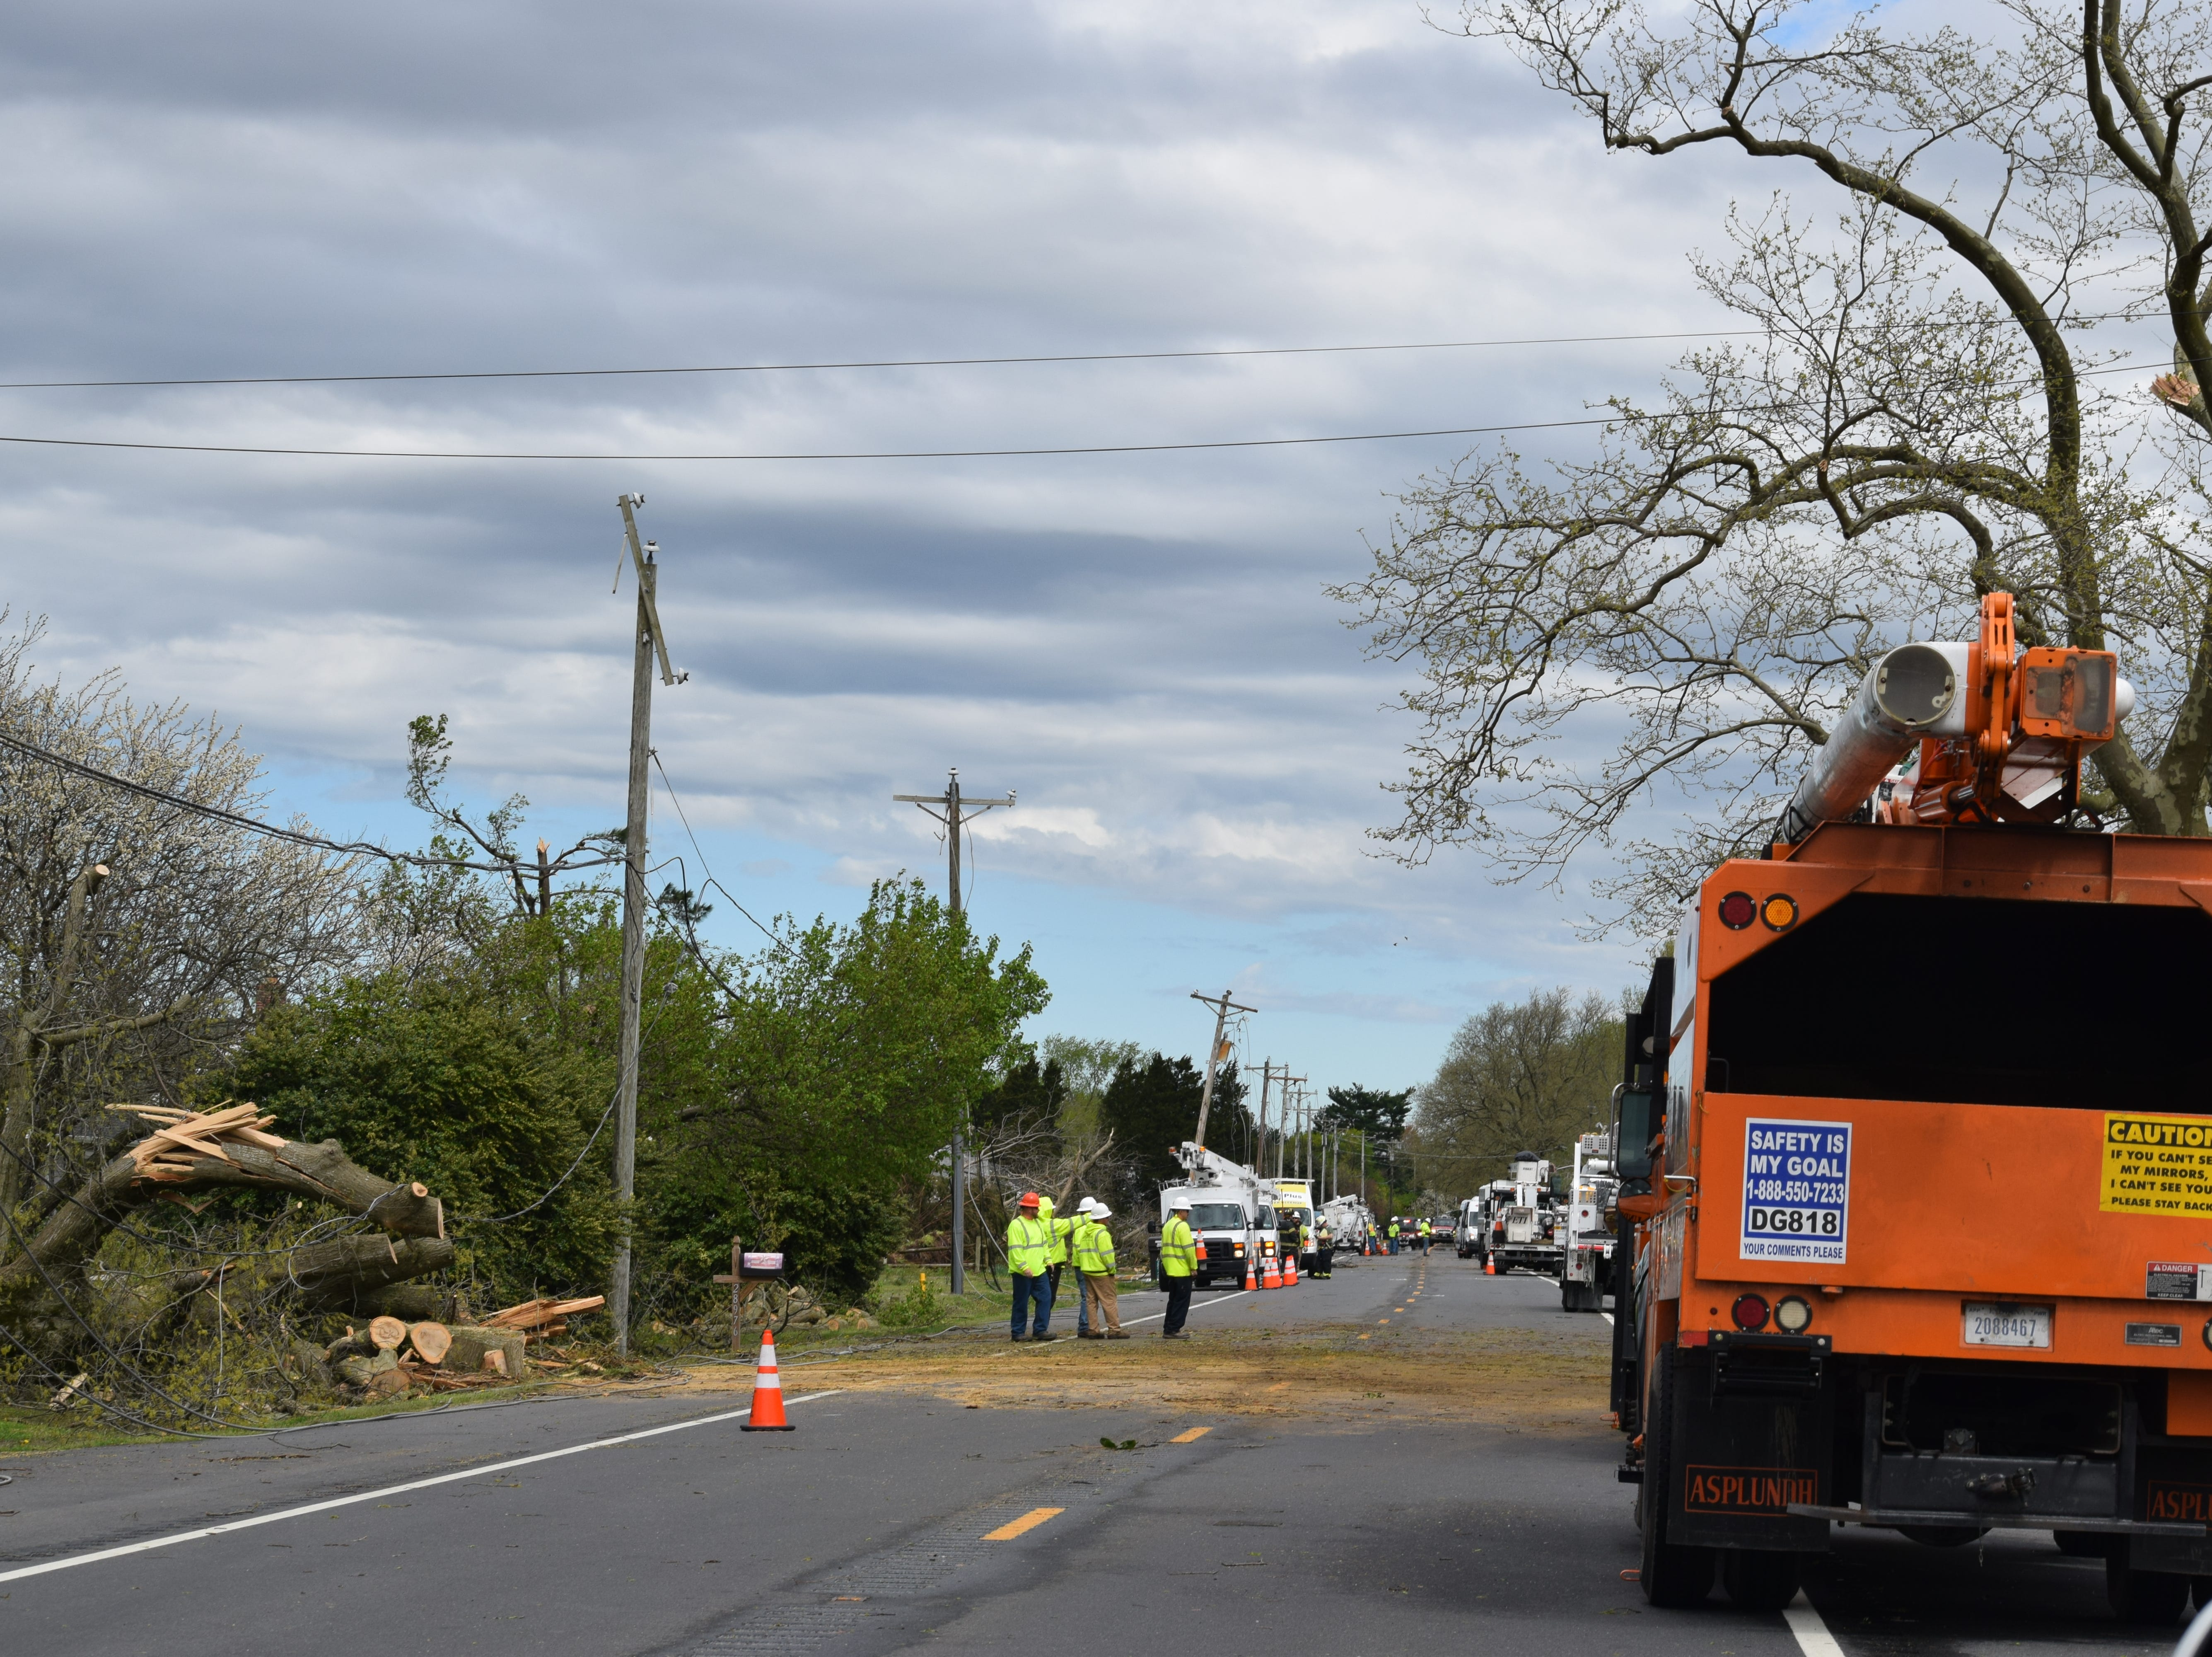 Trees and power lines were down in parts of western Sussex County on Monday after a storm.